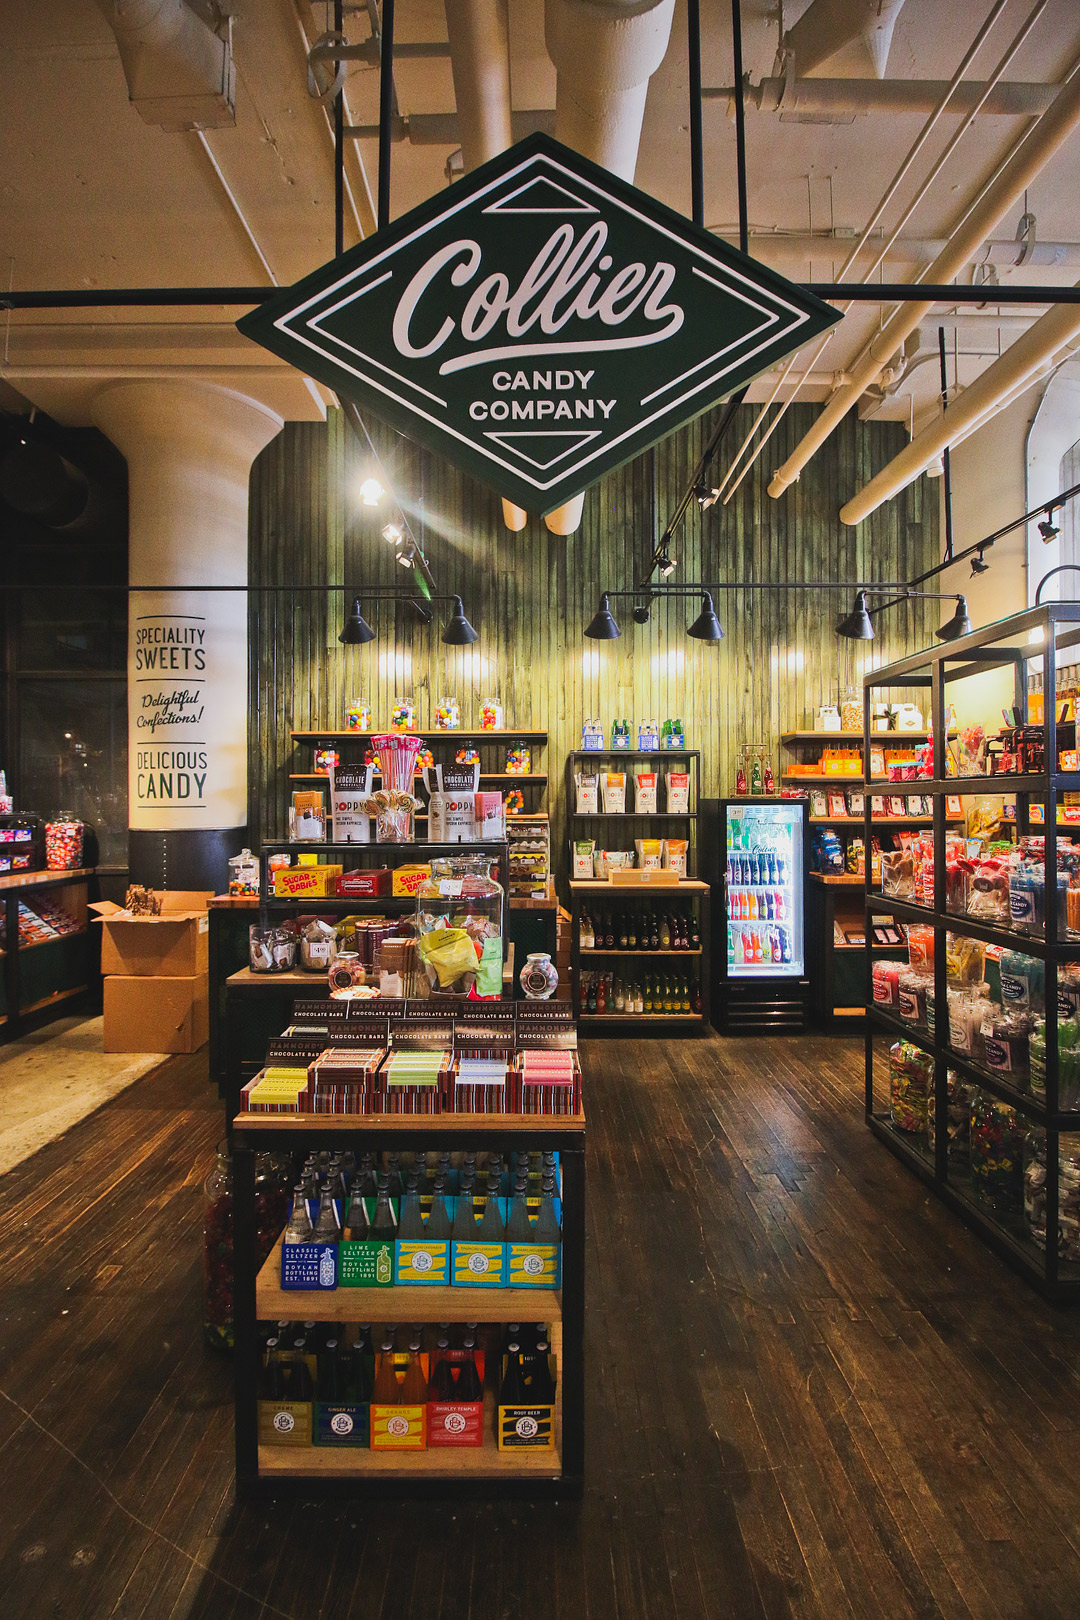 Collier Candy Company + Your Essential Guide to the Best Ponce City Market Stores, Restaurants, and Bars // Local Adventurer #candy #atlanta #pcm #ponce #atl #georgia #ga #usa #travel #shopping